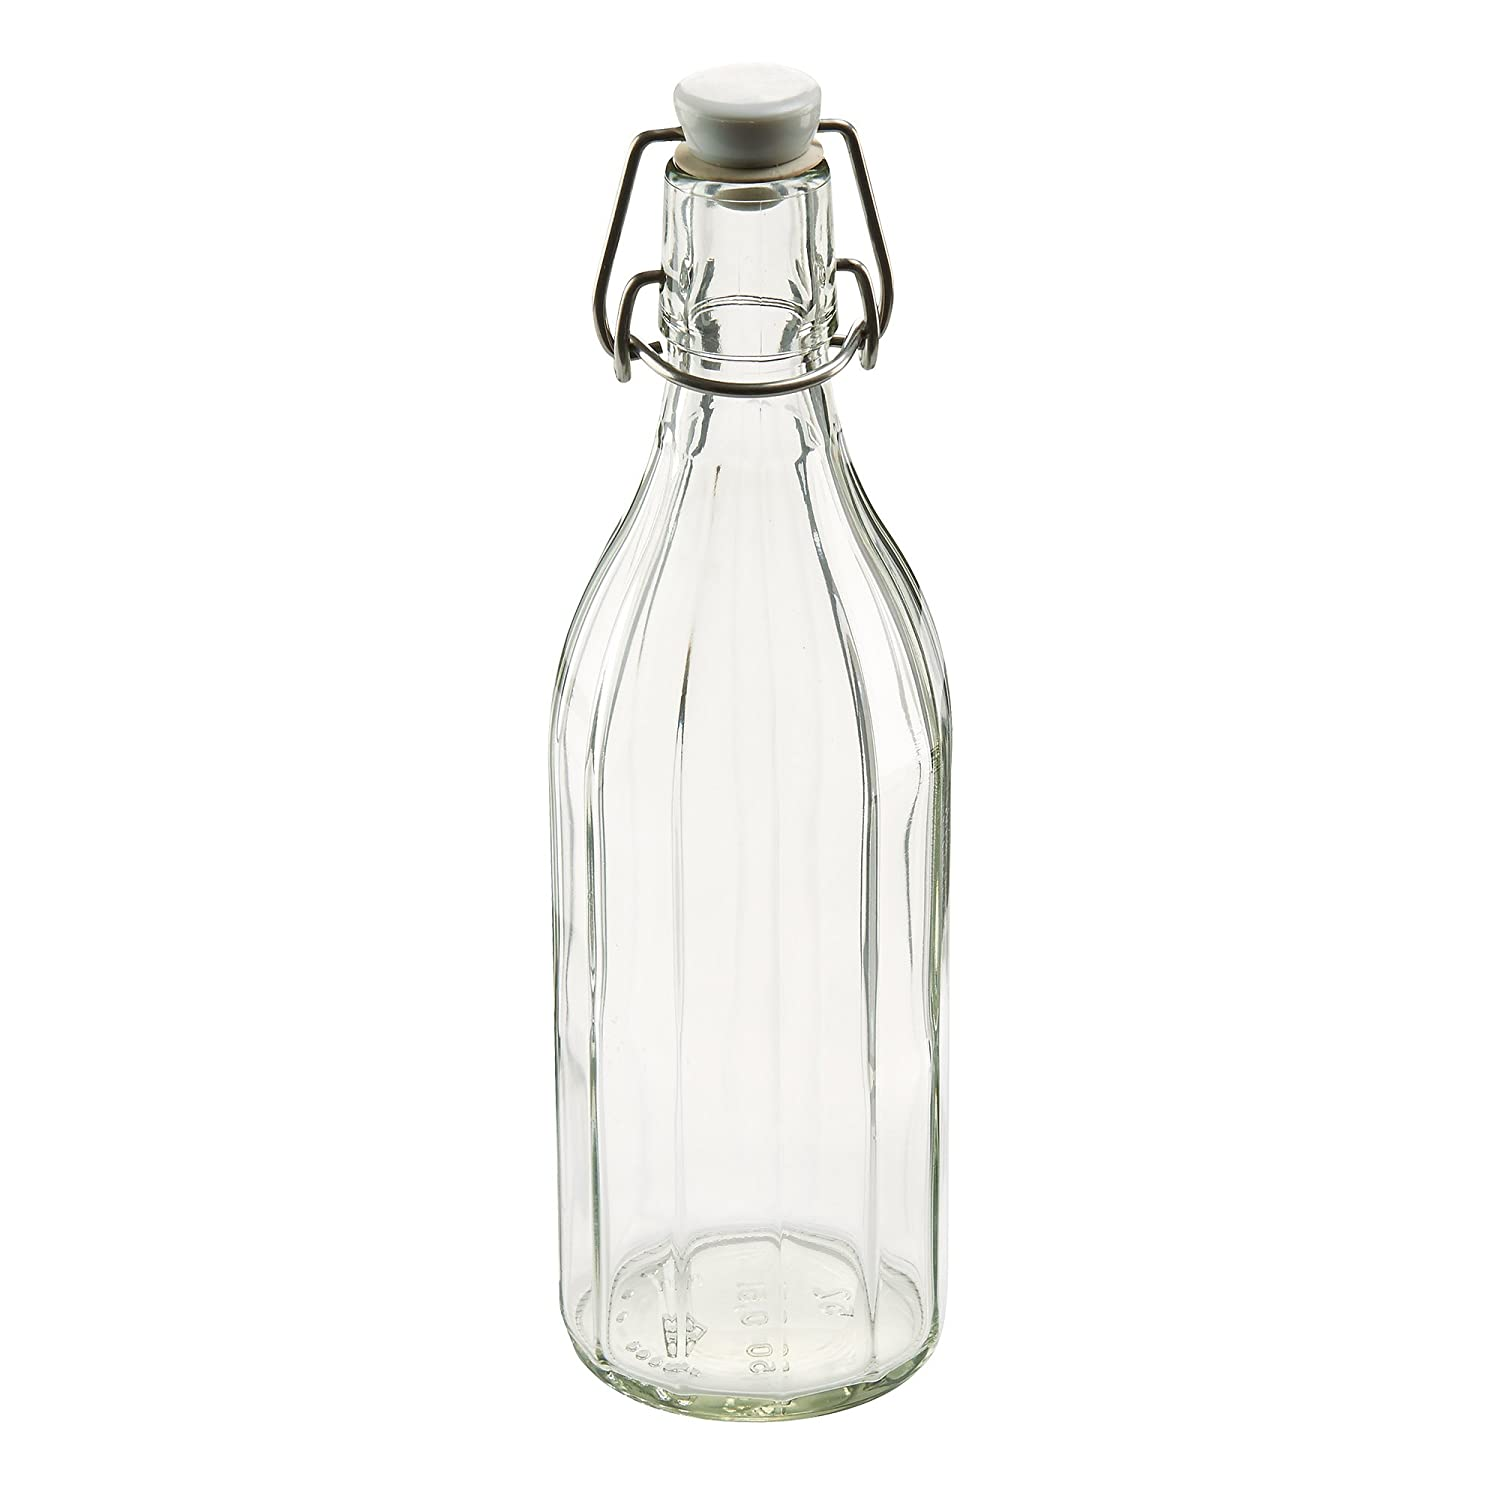 Leifheit 03180 Reusable Glass Bottle with Shackle Lock Stopper | Clear 03180-6